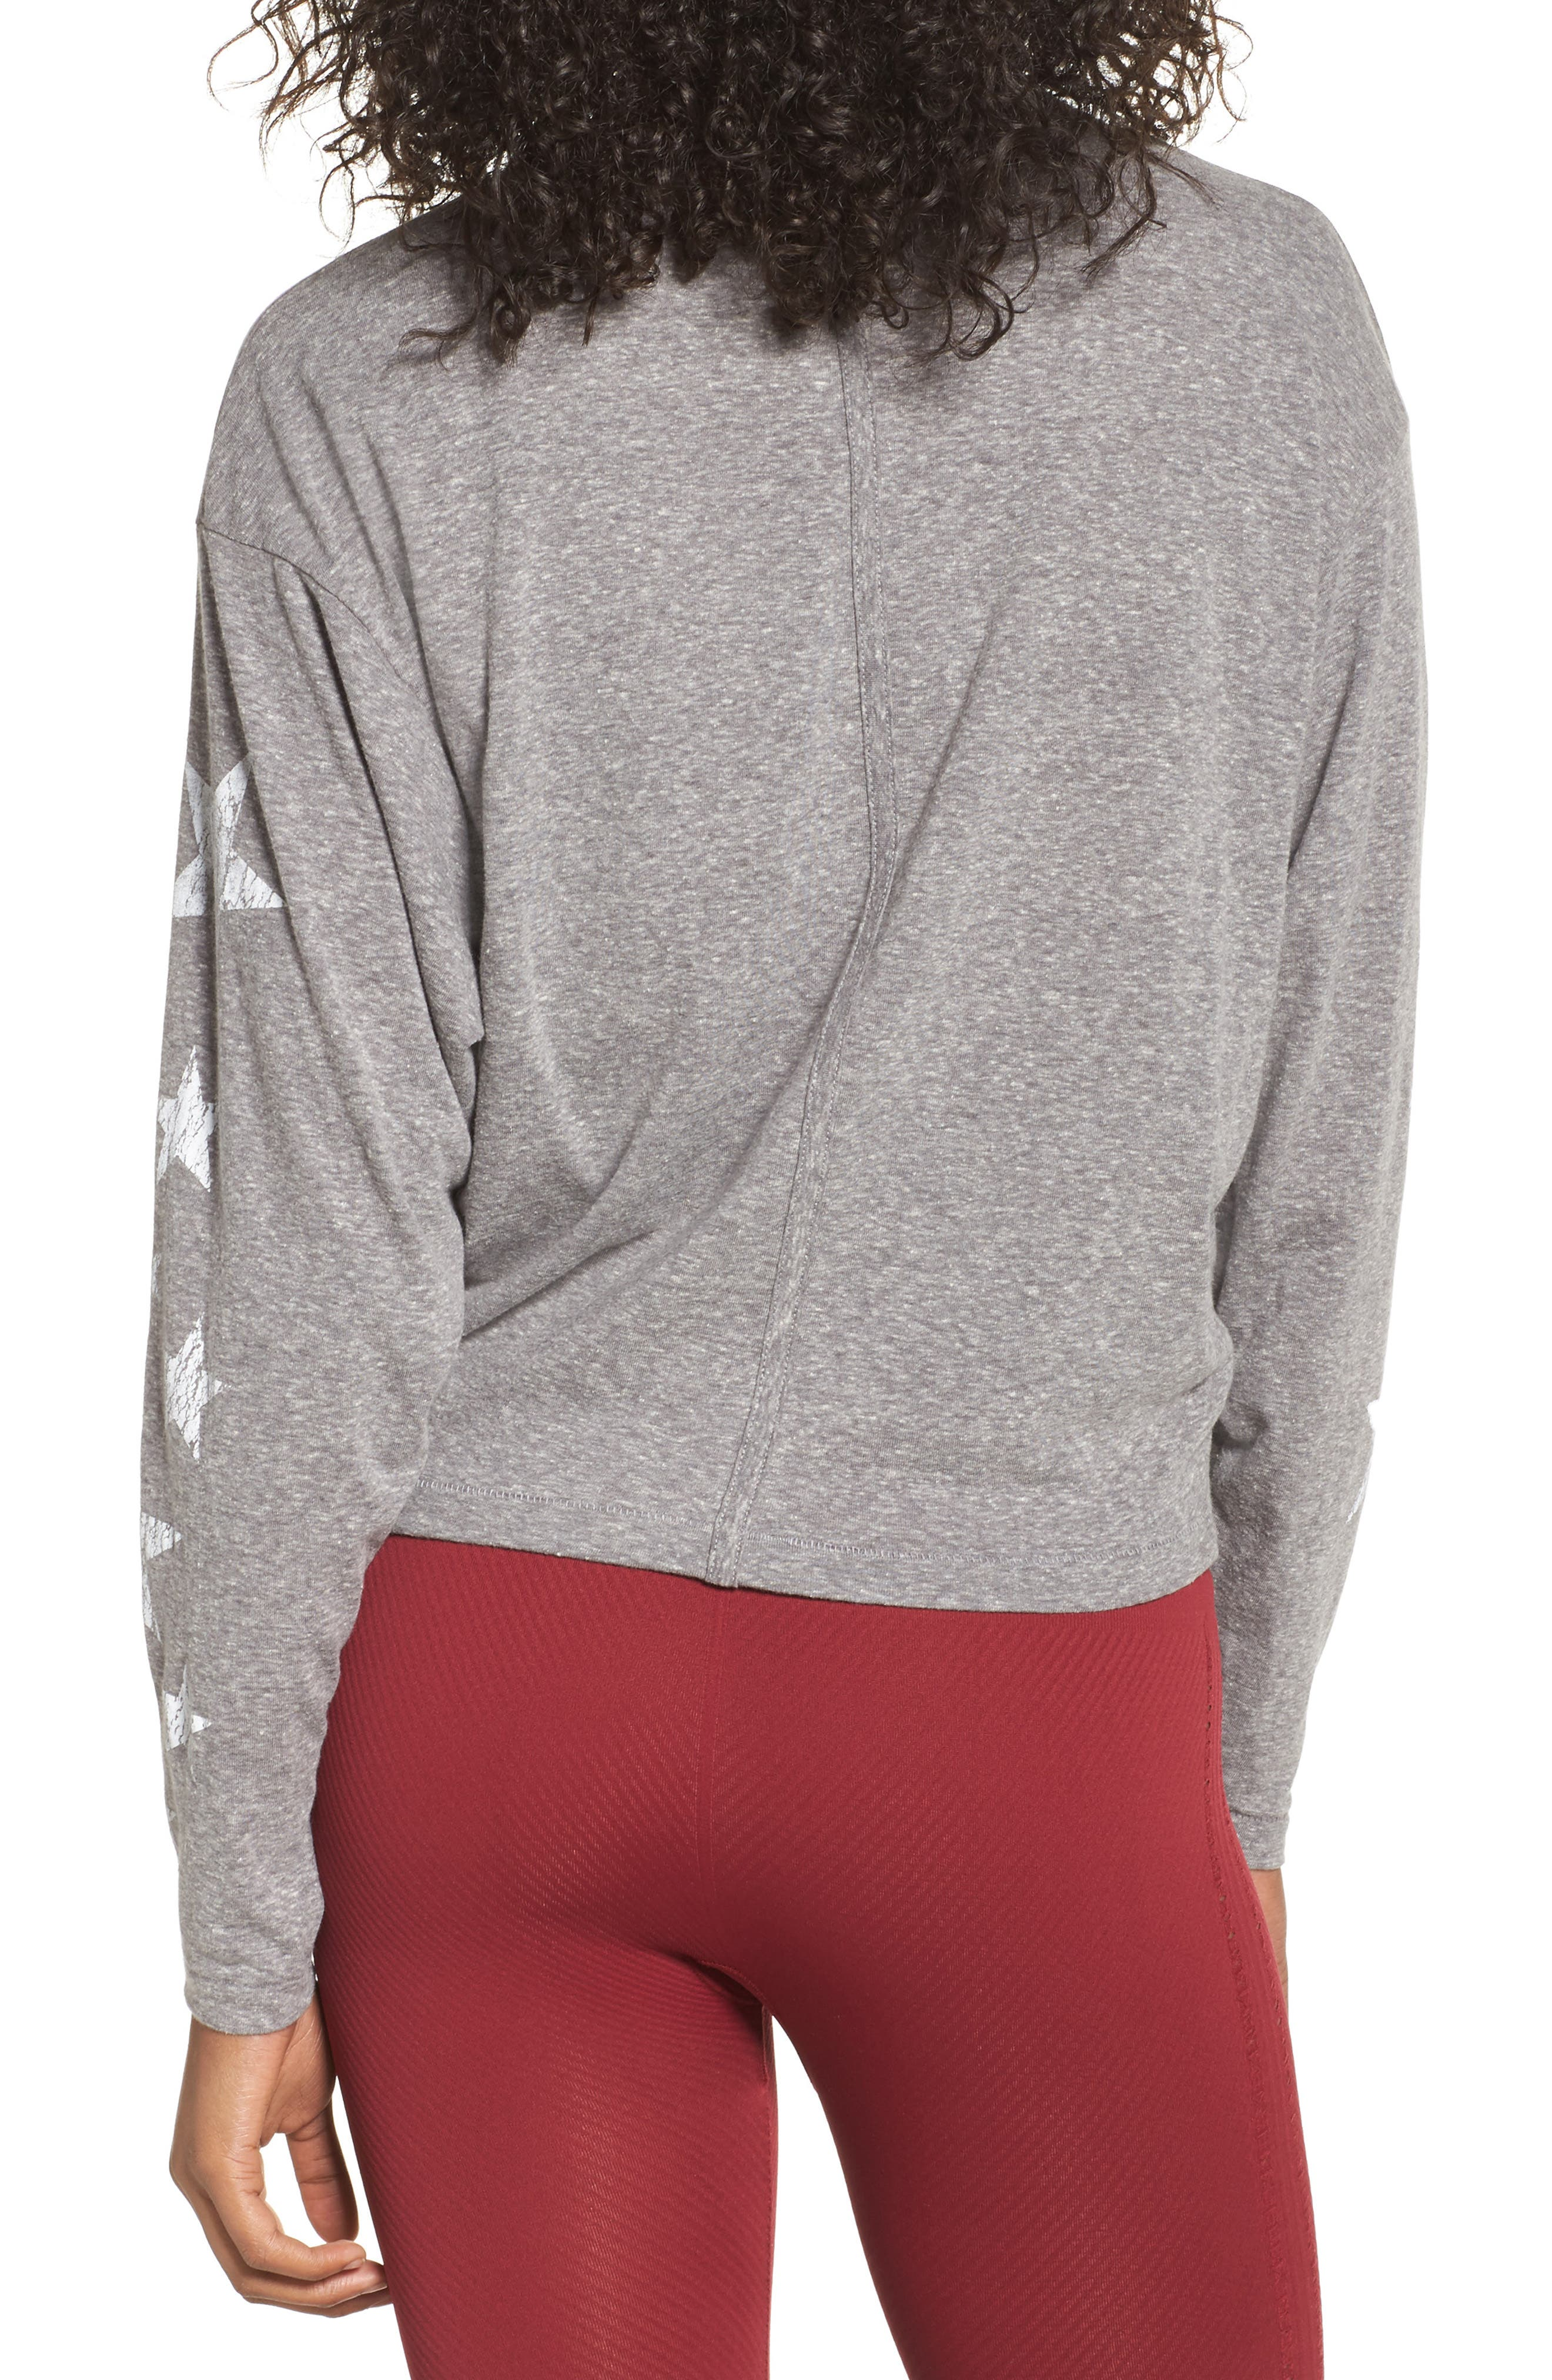 Free People Melrose Star Graphic Top,                             Alternate thumbnail 3, color,                             Grey